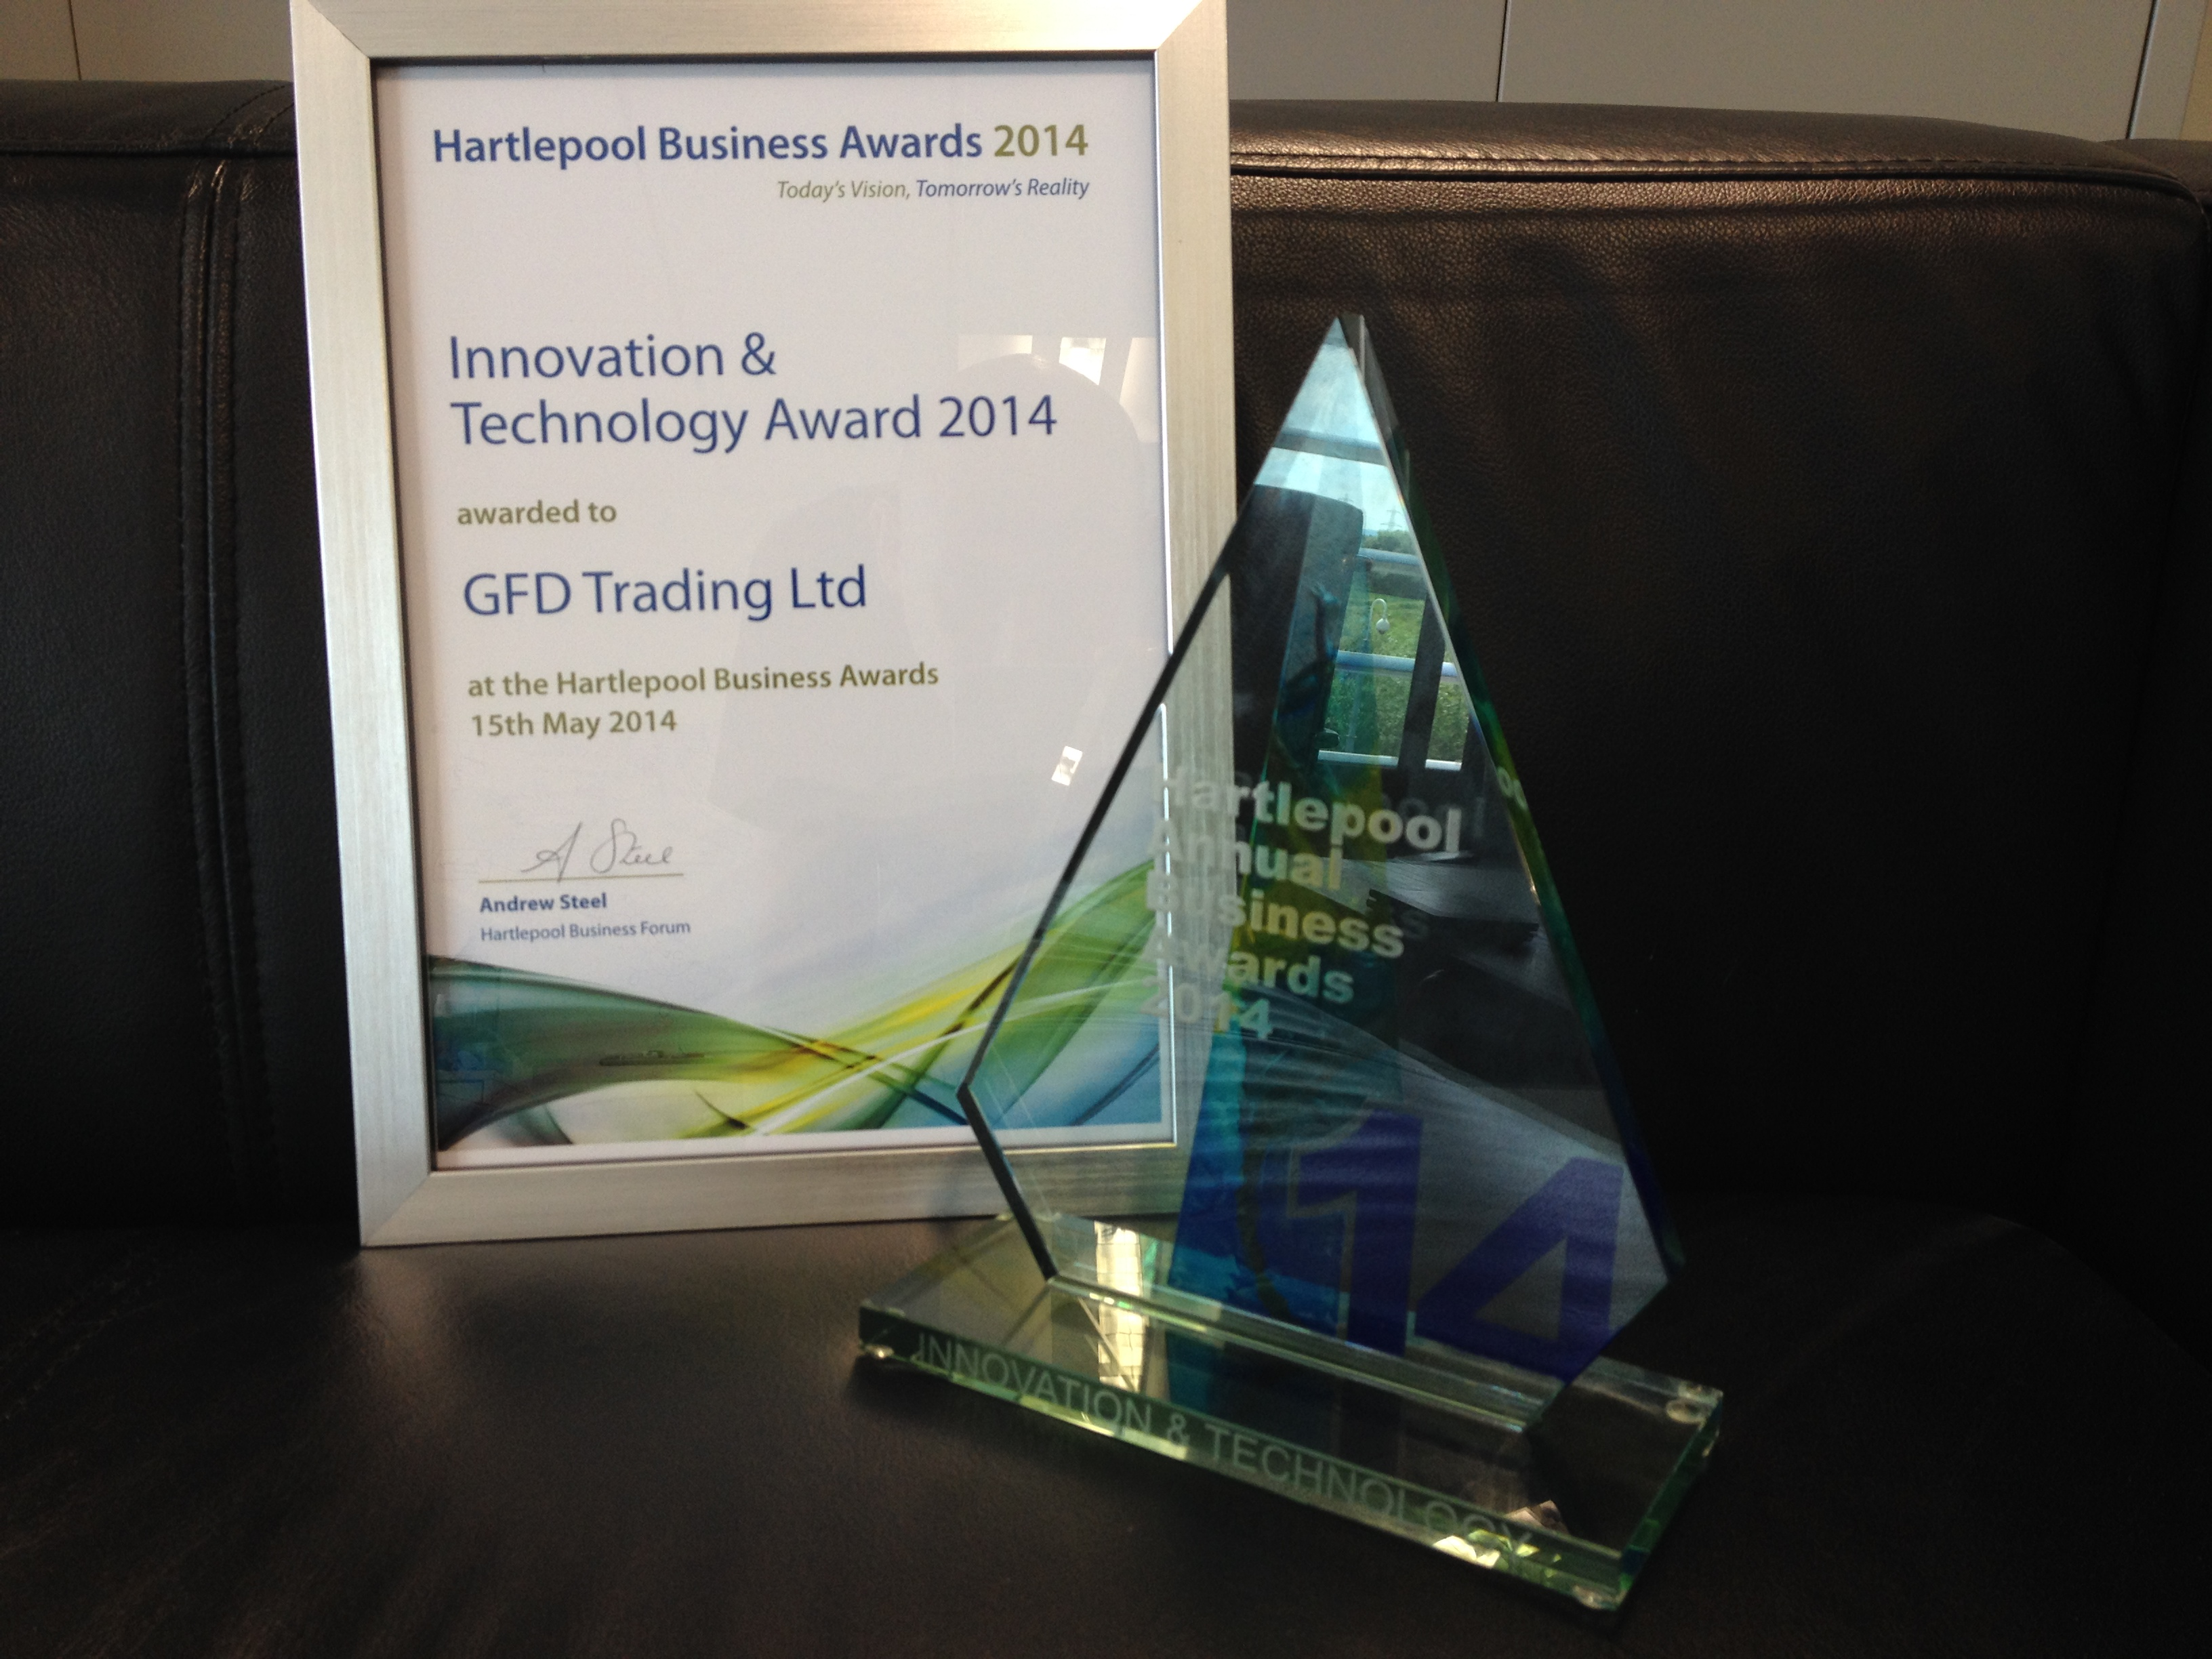 Innovation and Technology Award